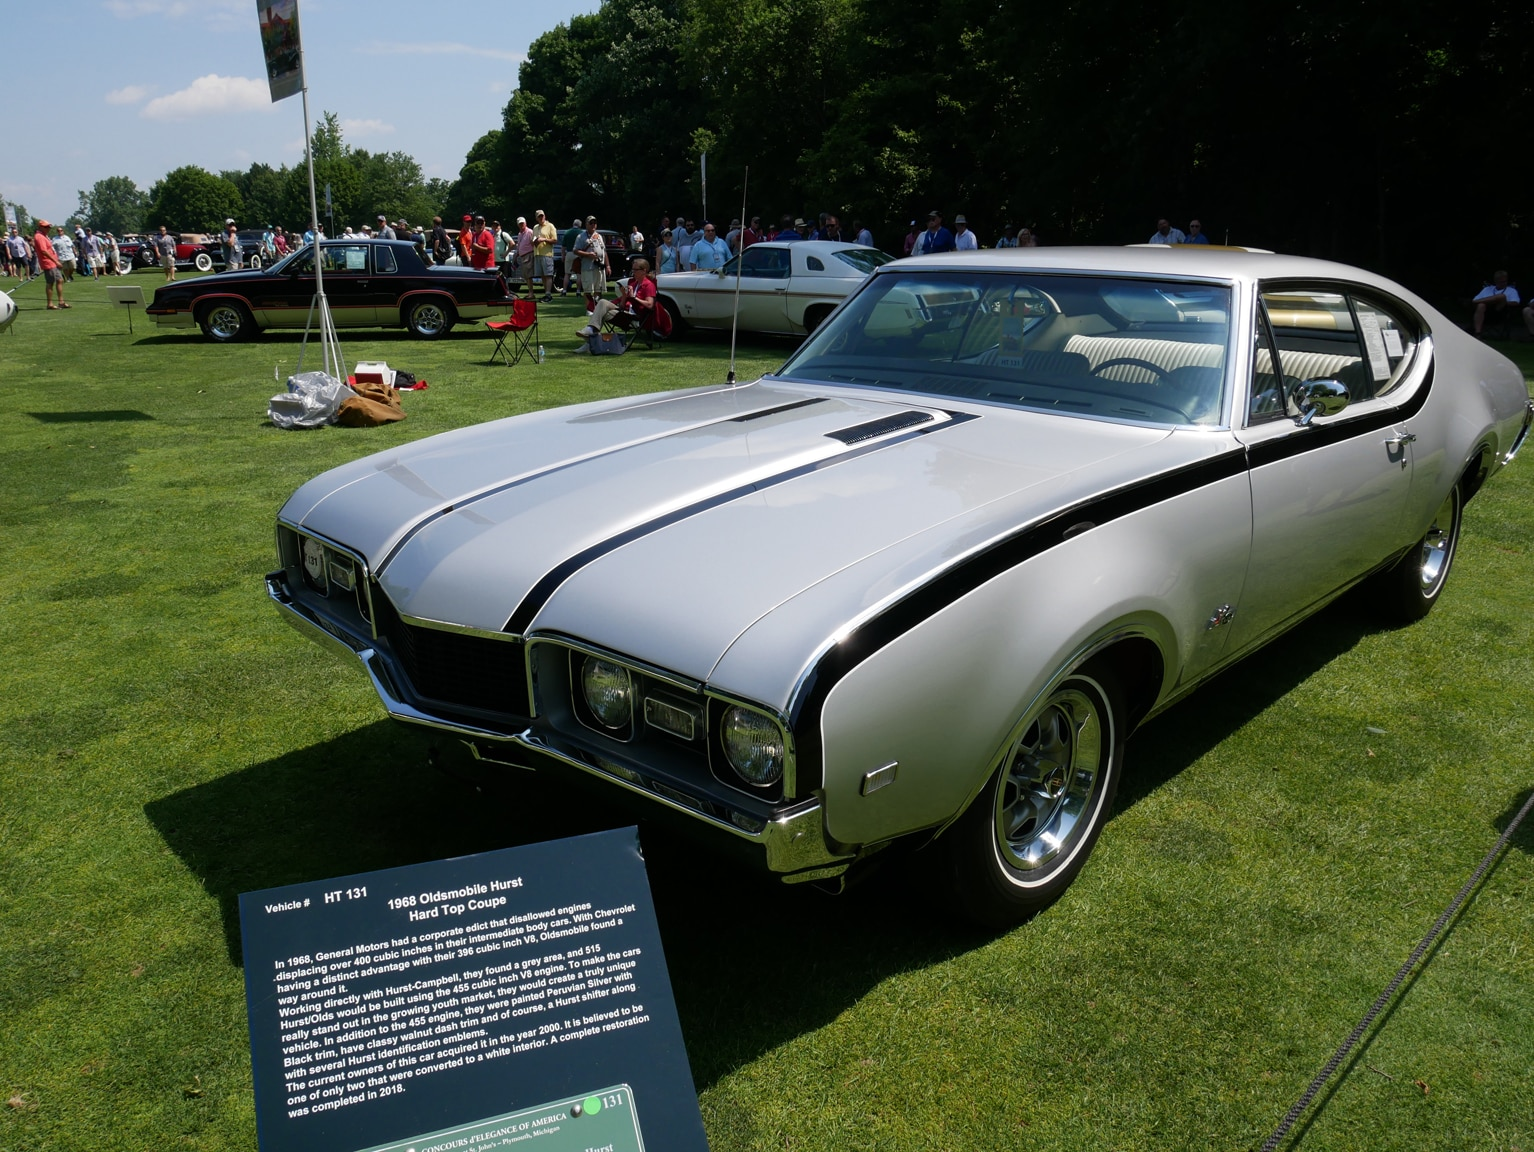 In Photos: 2019 Concours d'Elegance of America | Automobile